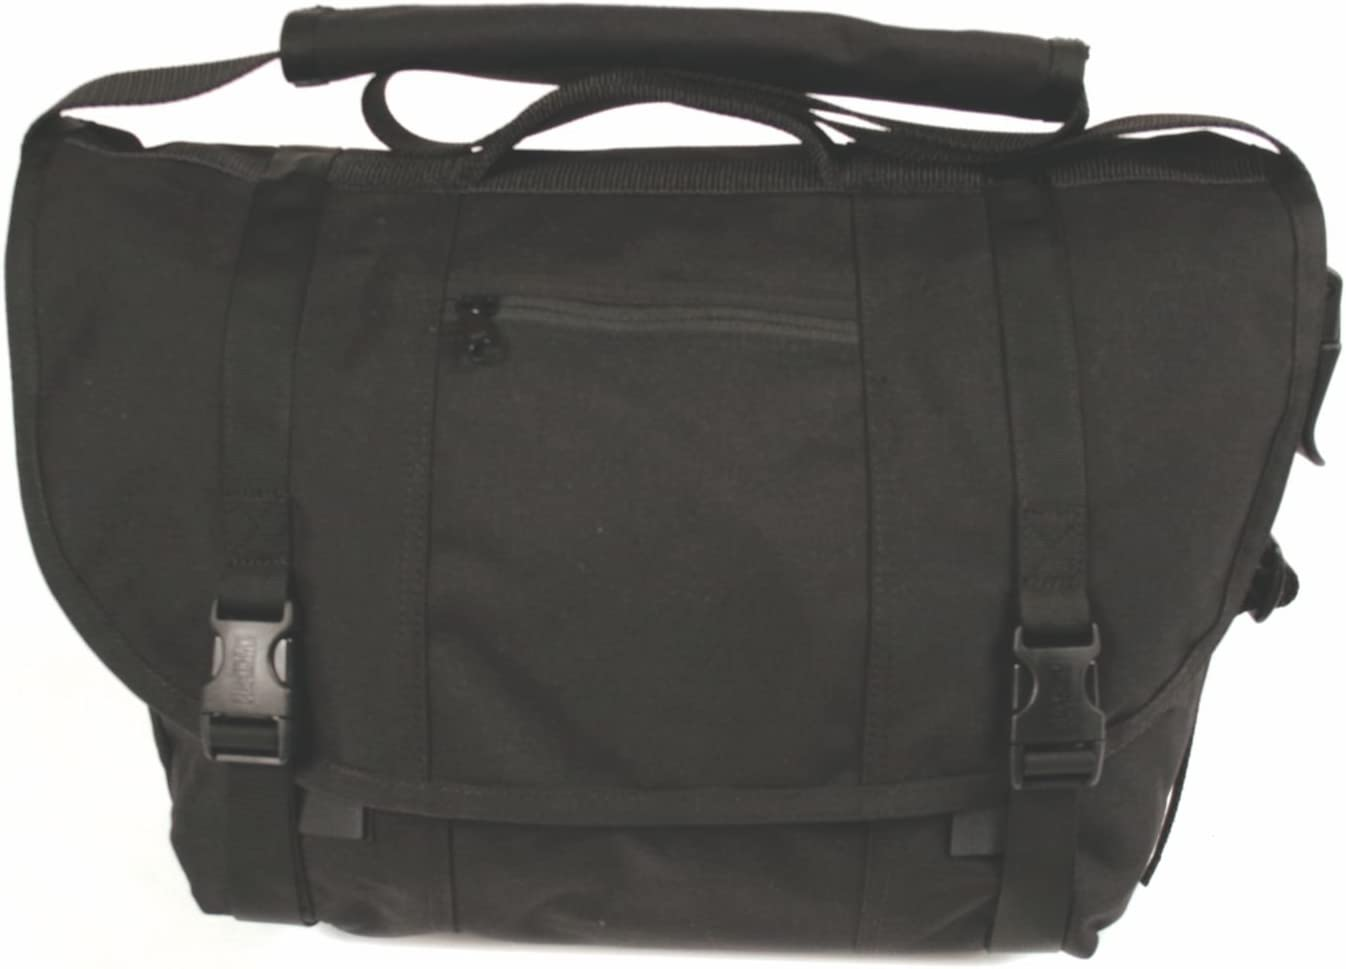 B002FKO6UI BLACKHAWK Covert Carry Messenger Bag 61zje178YgL.SL1400_